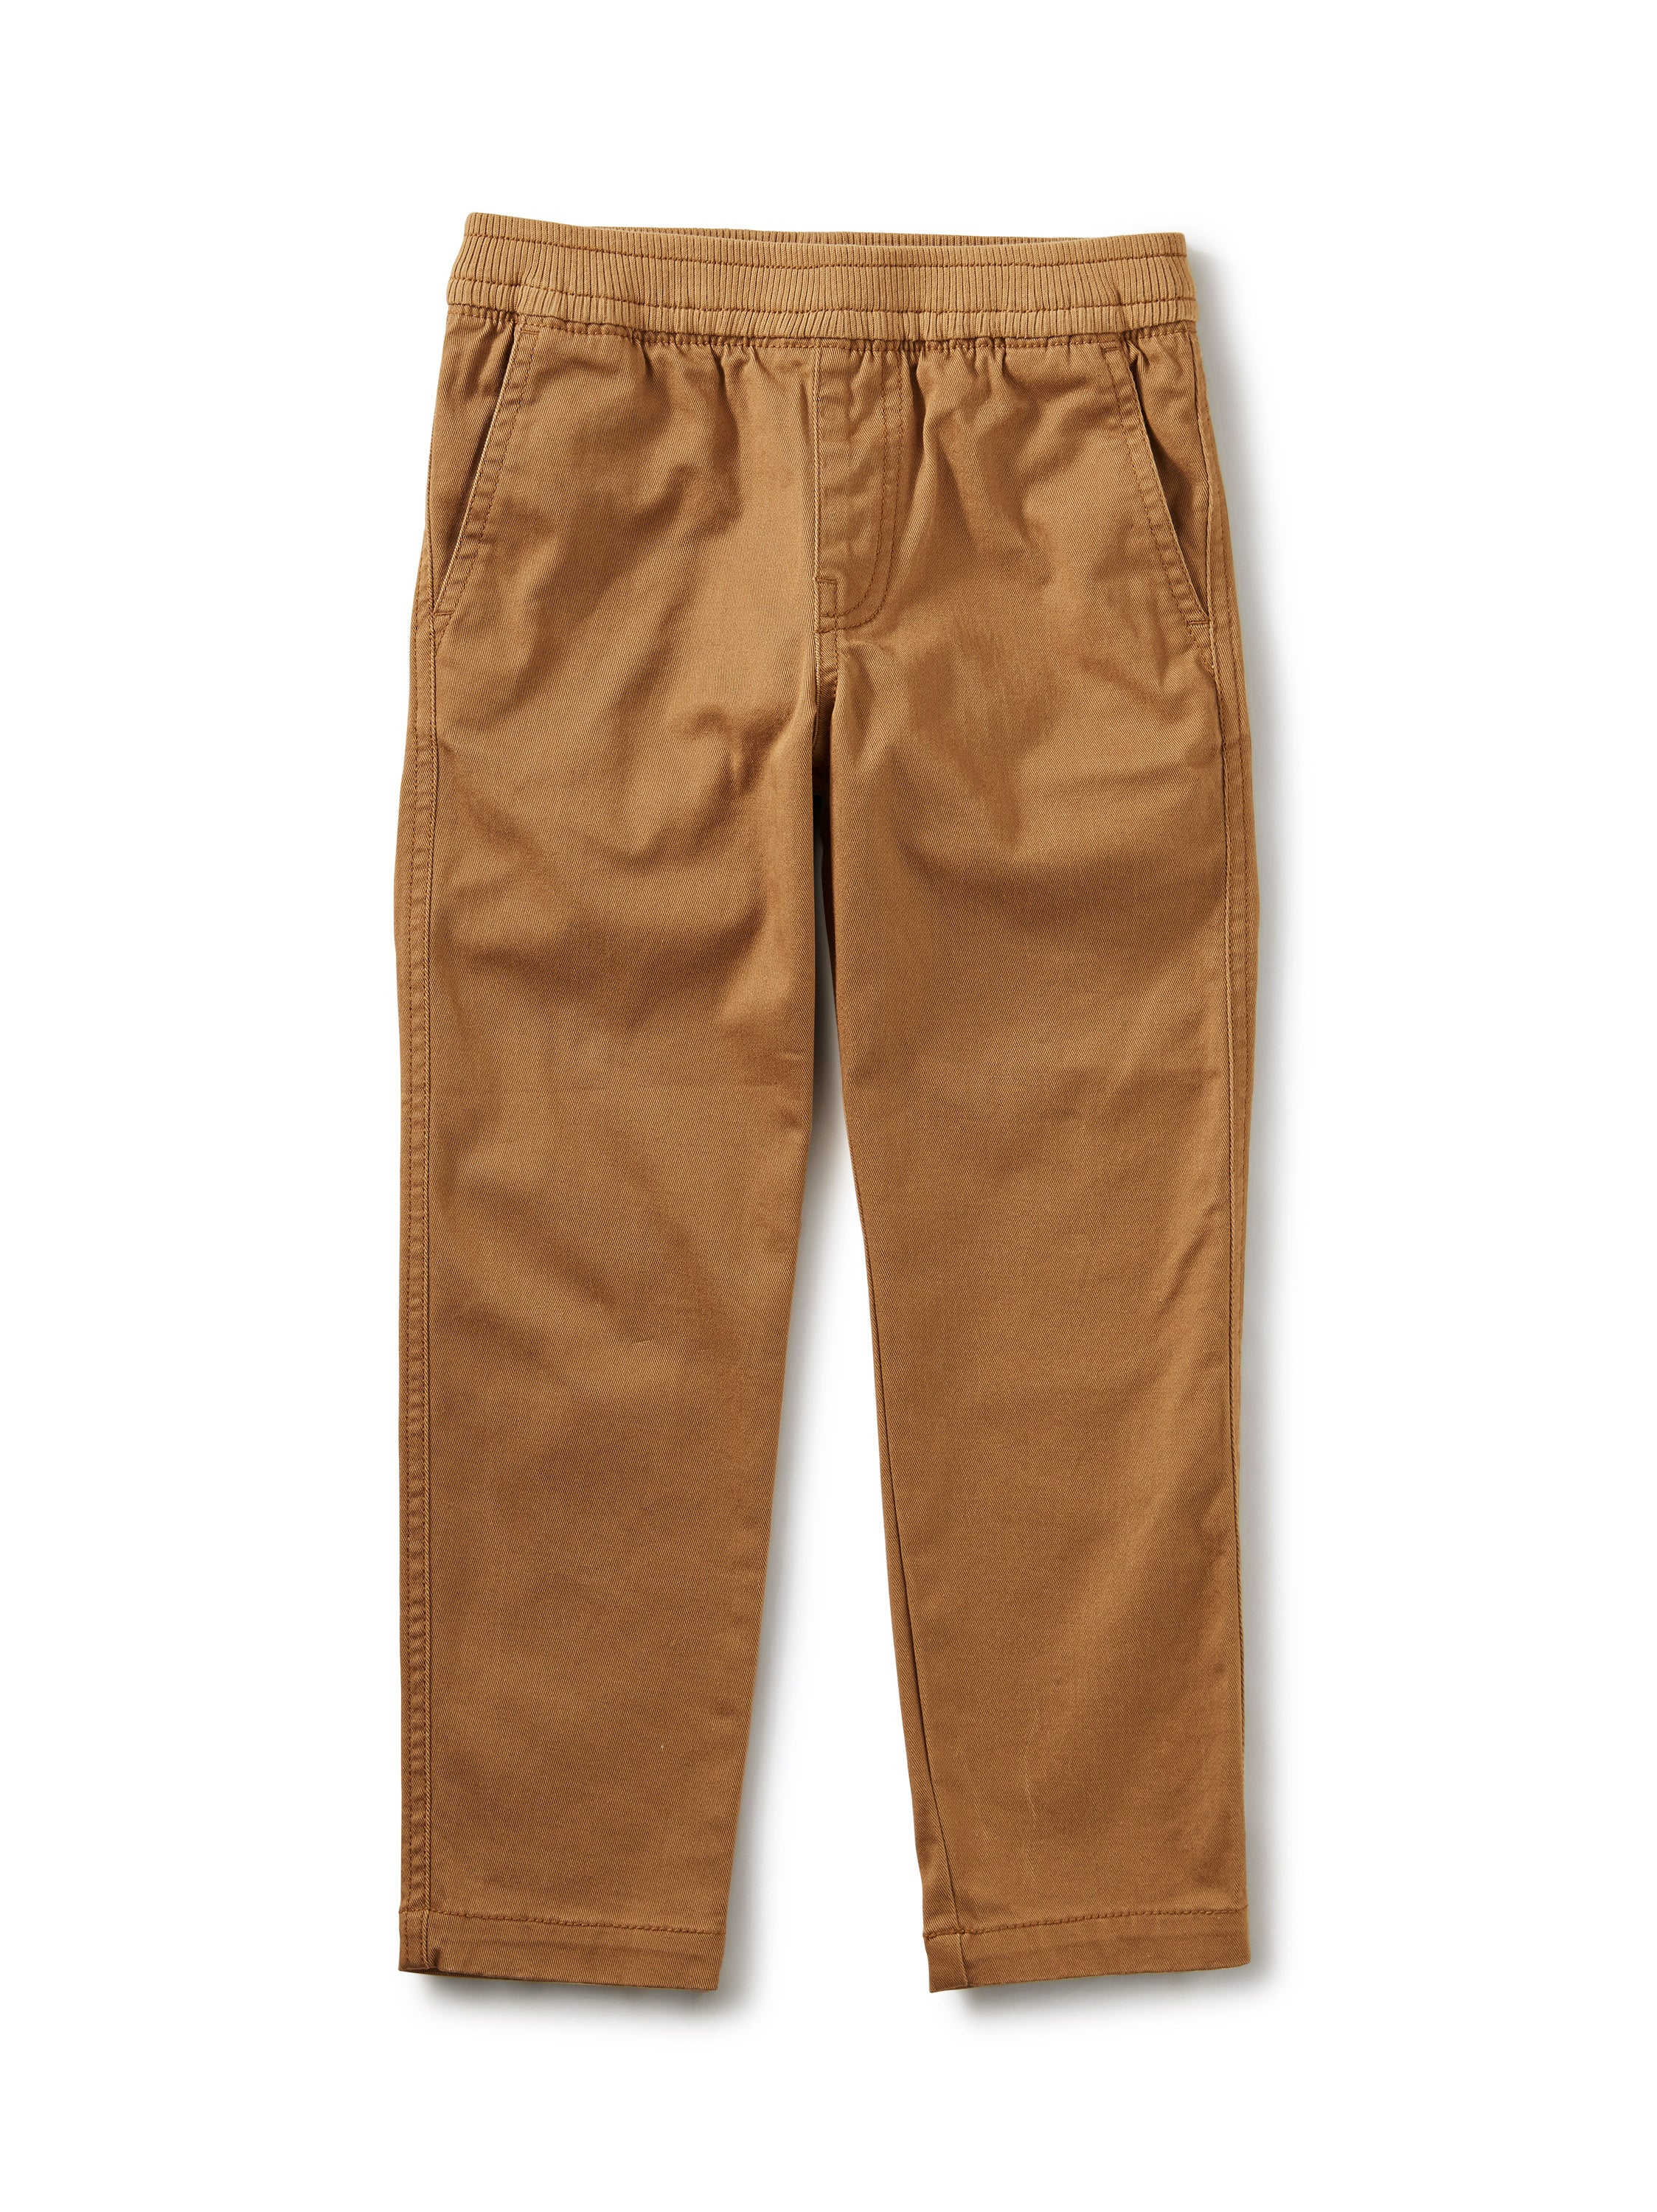 WHEAT TWILL PANT